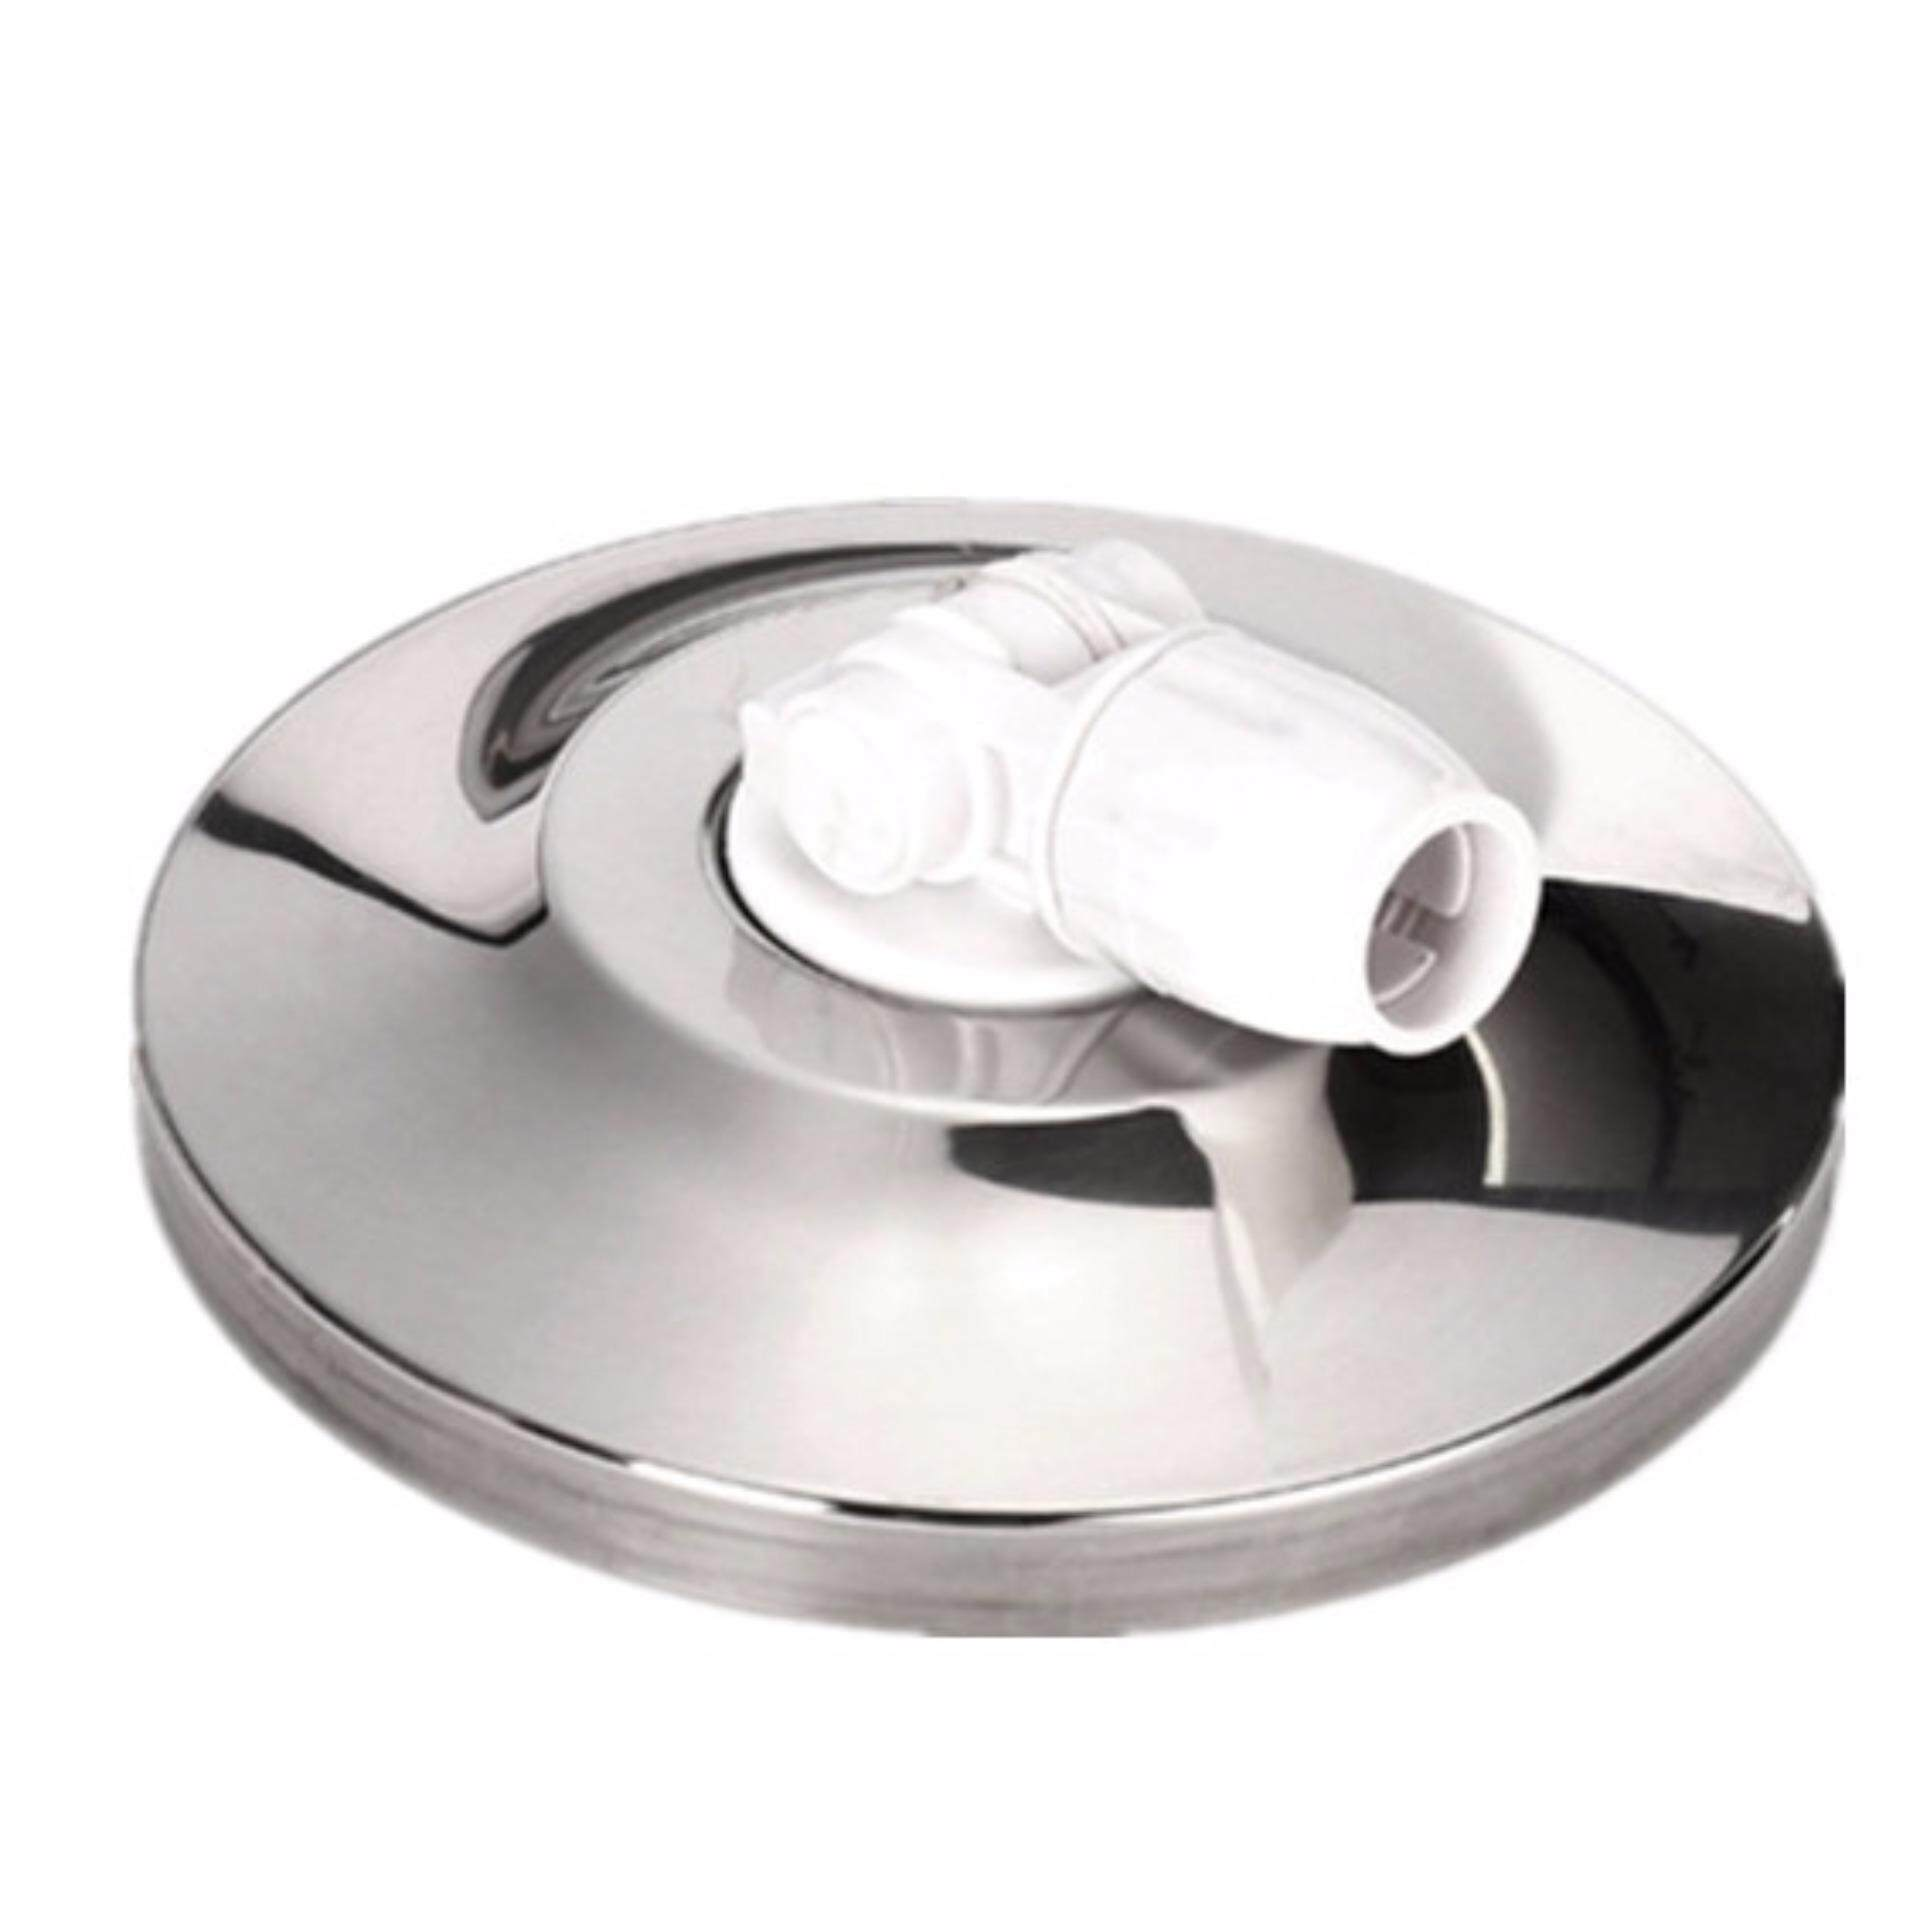 Universal Replacement Stainless Steel Mop Head Plate